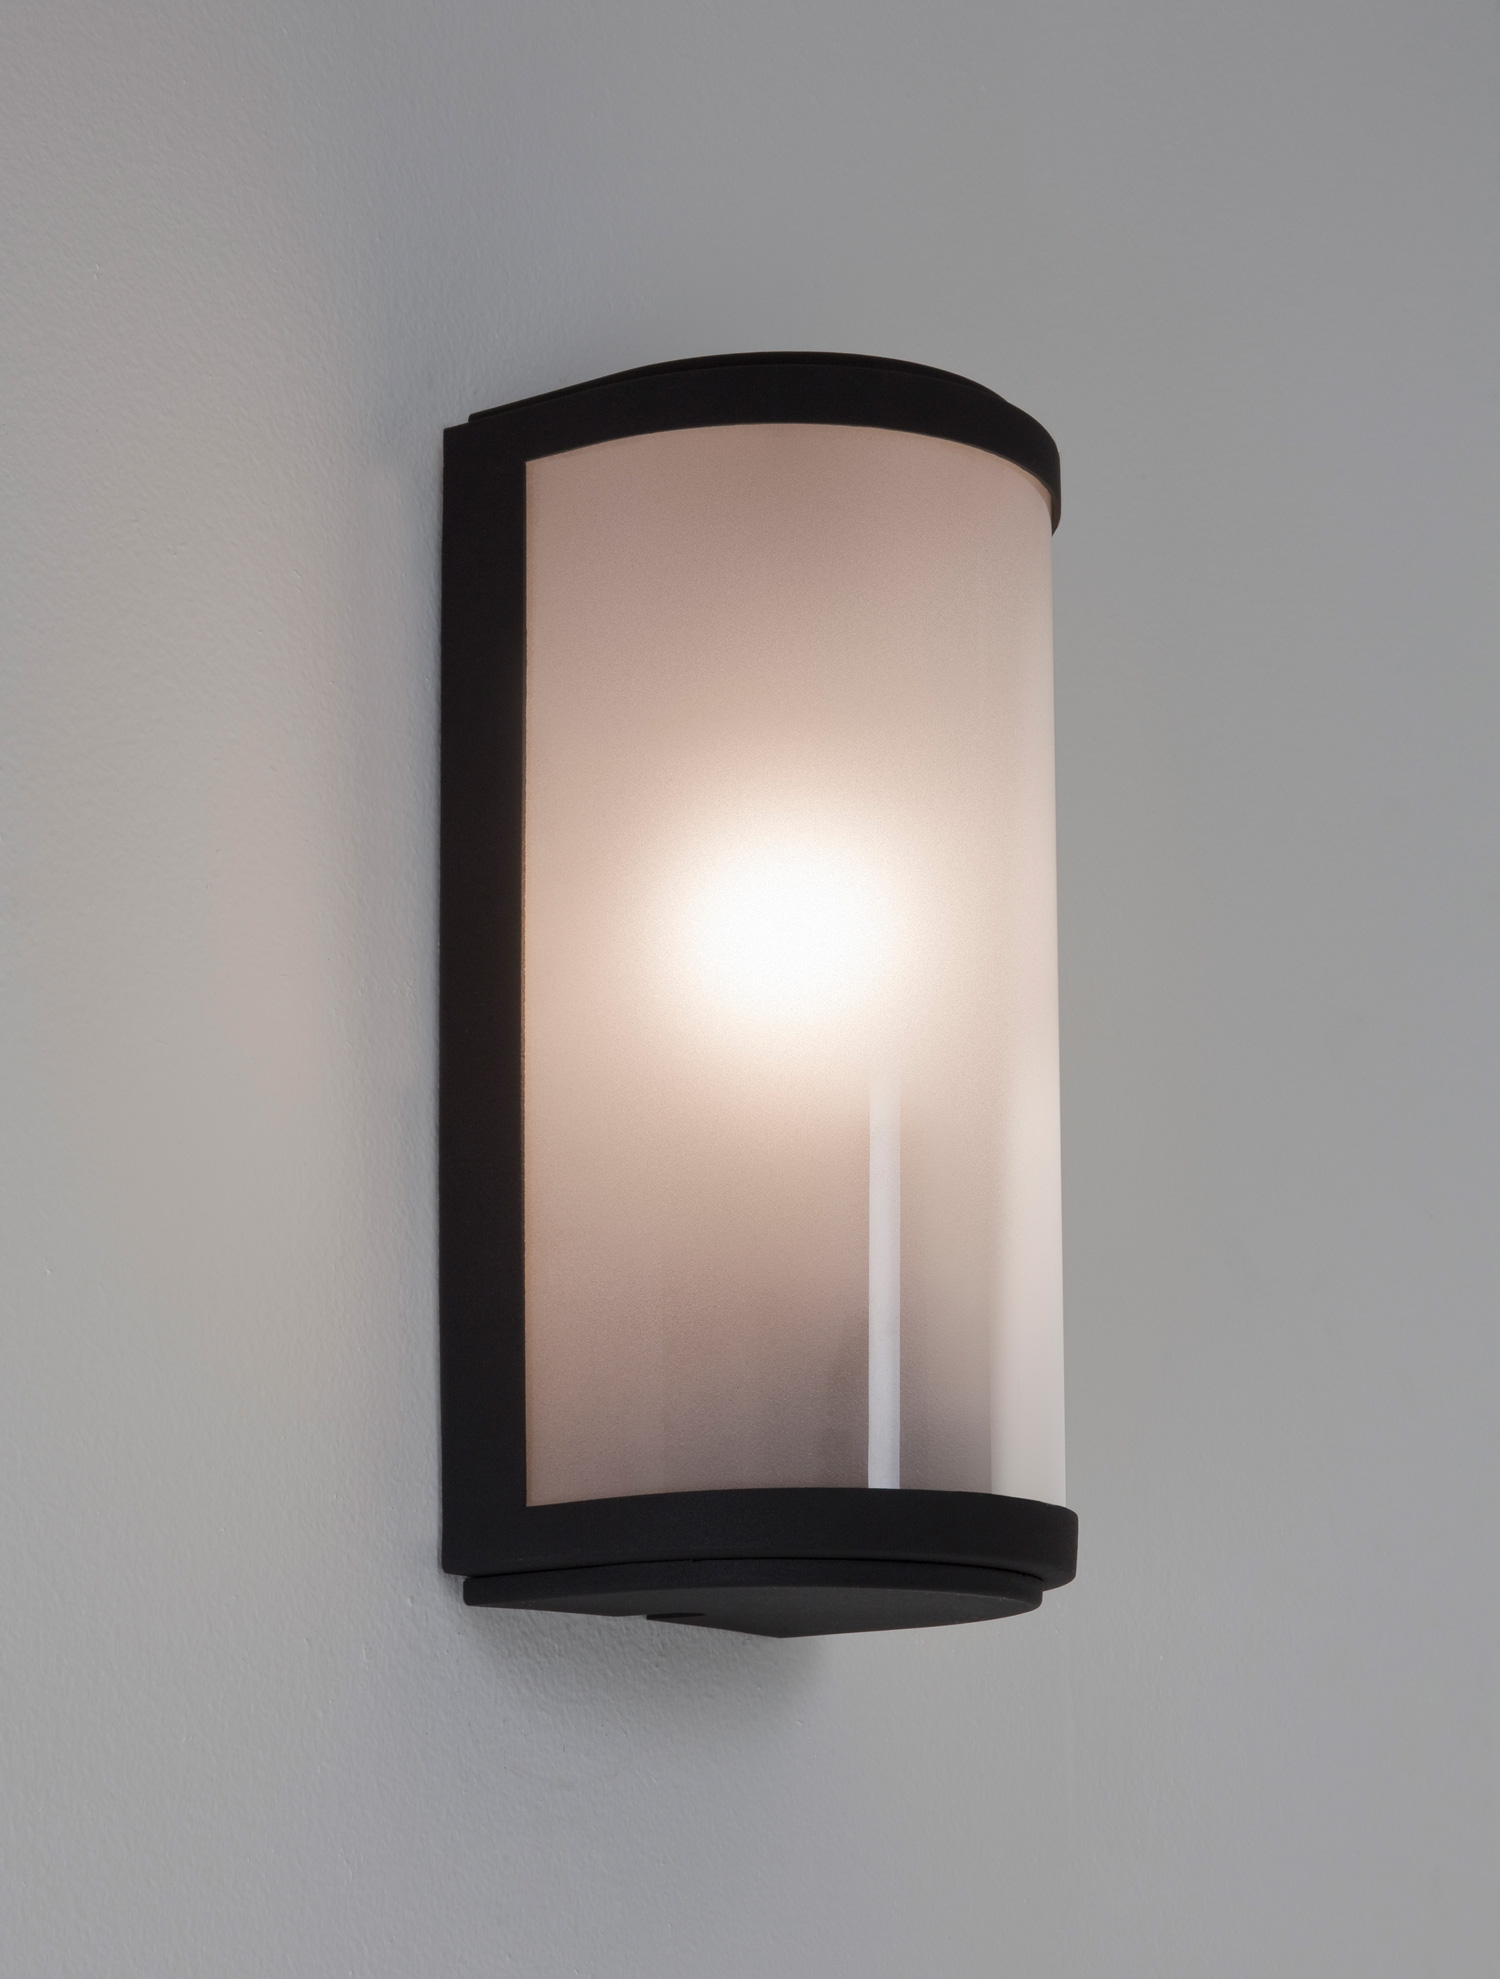 Wall Lamps External : Astro Paros IP44 outdoor external wall light 60W E27 lamp black frosted glass eBay